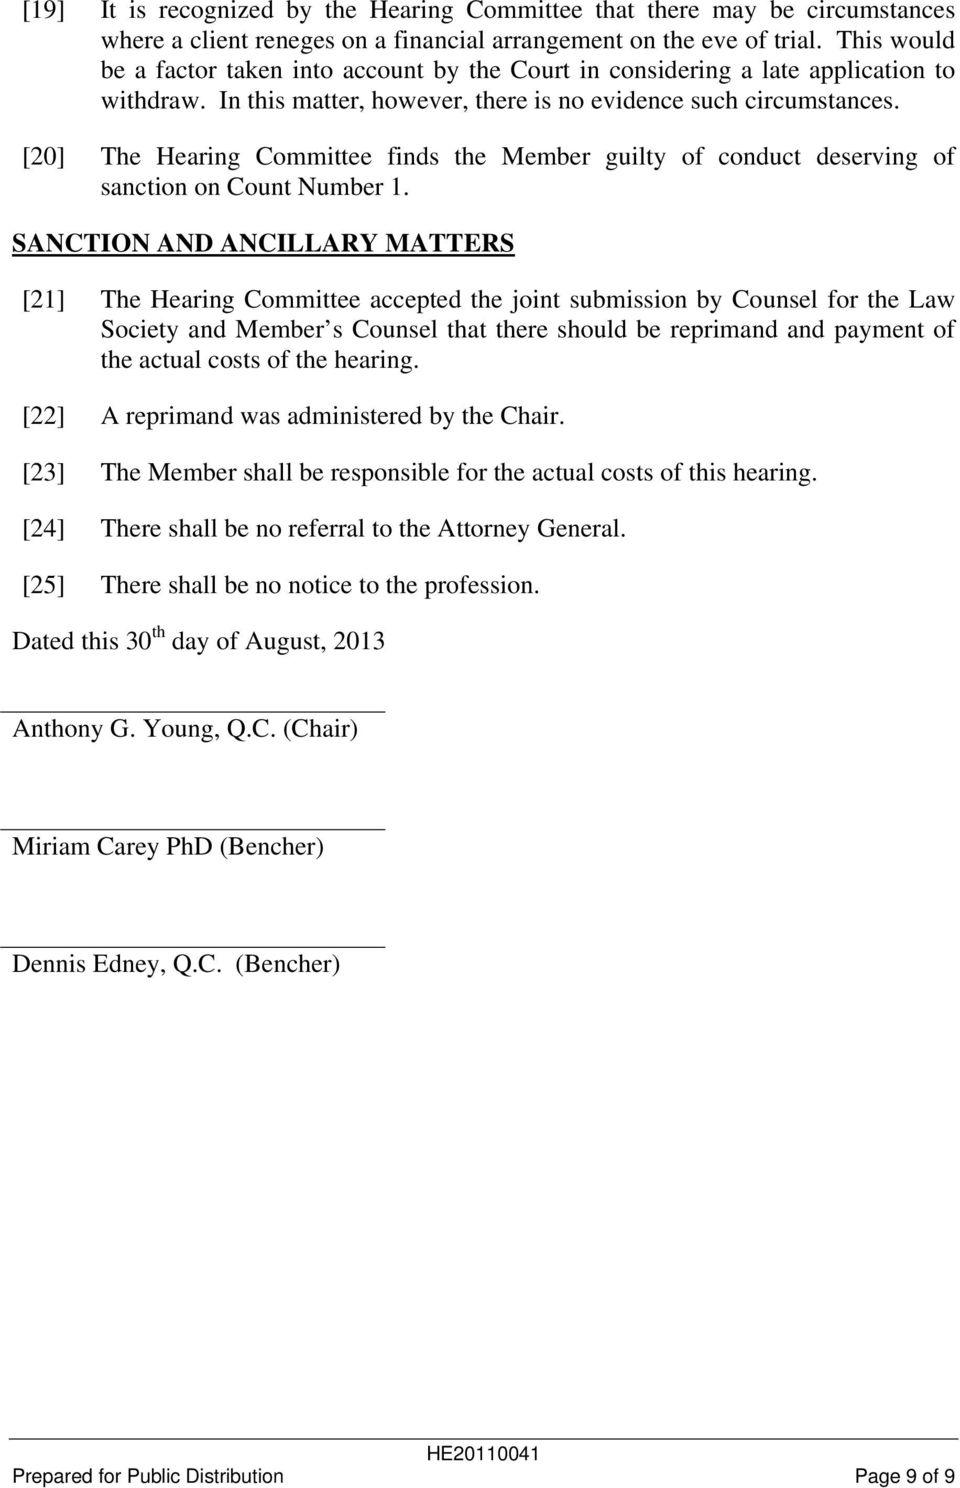 [20] The Hearing Committee finds the Member guilty of conduct deserving of sanction on Count Number 1.